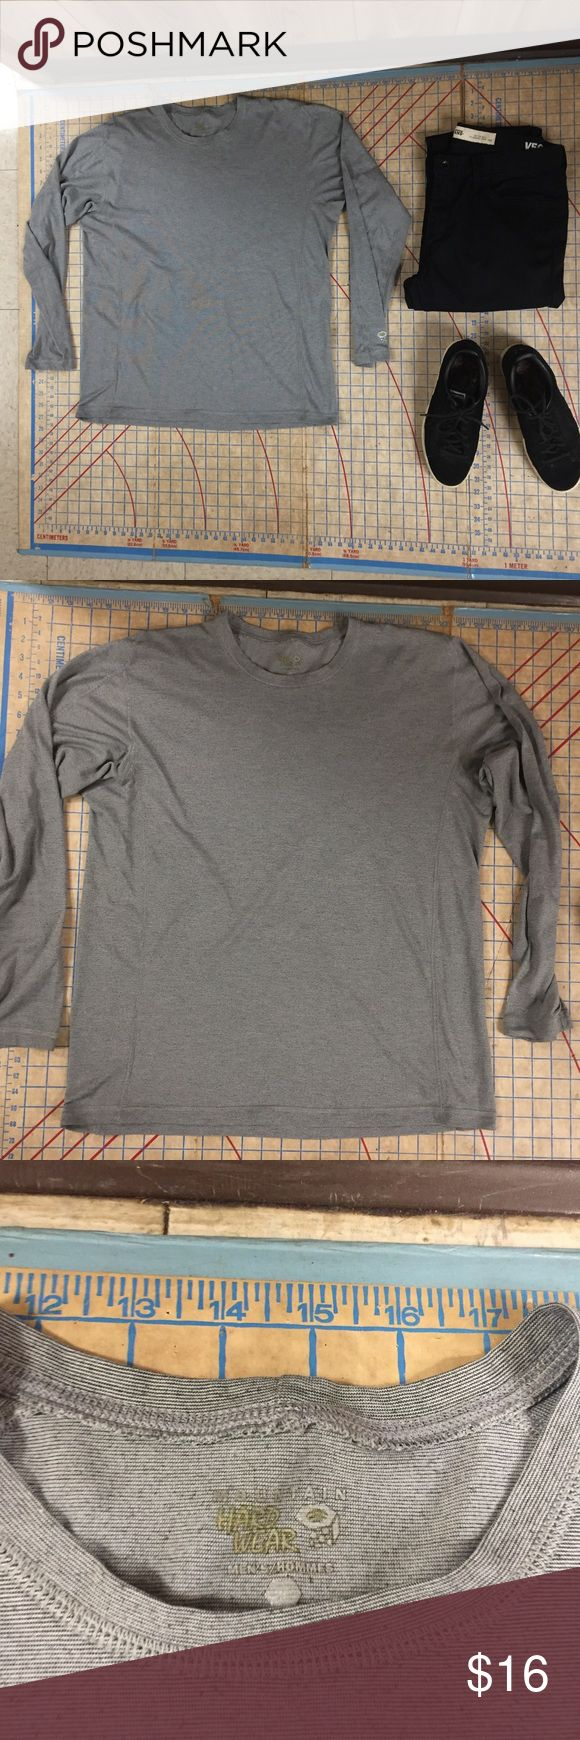 """Mountain Hard Ware long sleeve layering T-shirt Worn very little. Mountain Hard Ware base layer long sleeve crew neck. No size label but think this is a medium. Bought by my man's mother and always fit him a little large. No stains, holes or wear. Great shirt for layering. Wicks sweat from body. Performance shirt perfect for hiking, climbing or running. Shirt is 26"""" in length, 22"""" across chest, and 25"""" down the sleeve. Slightly fitted cut. Mountain Hard Wear Shirts Tees - Long Sleeve"""